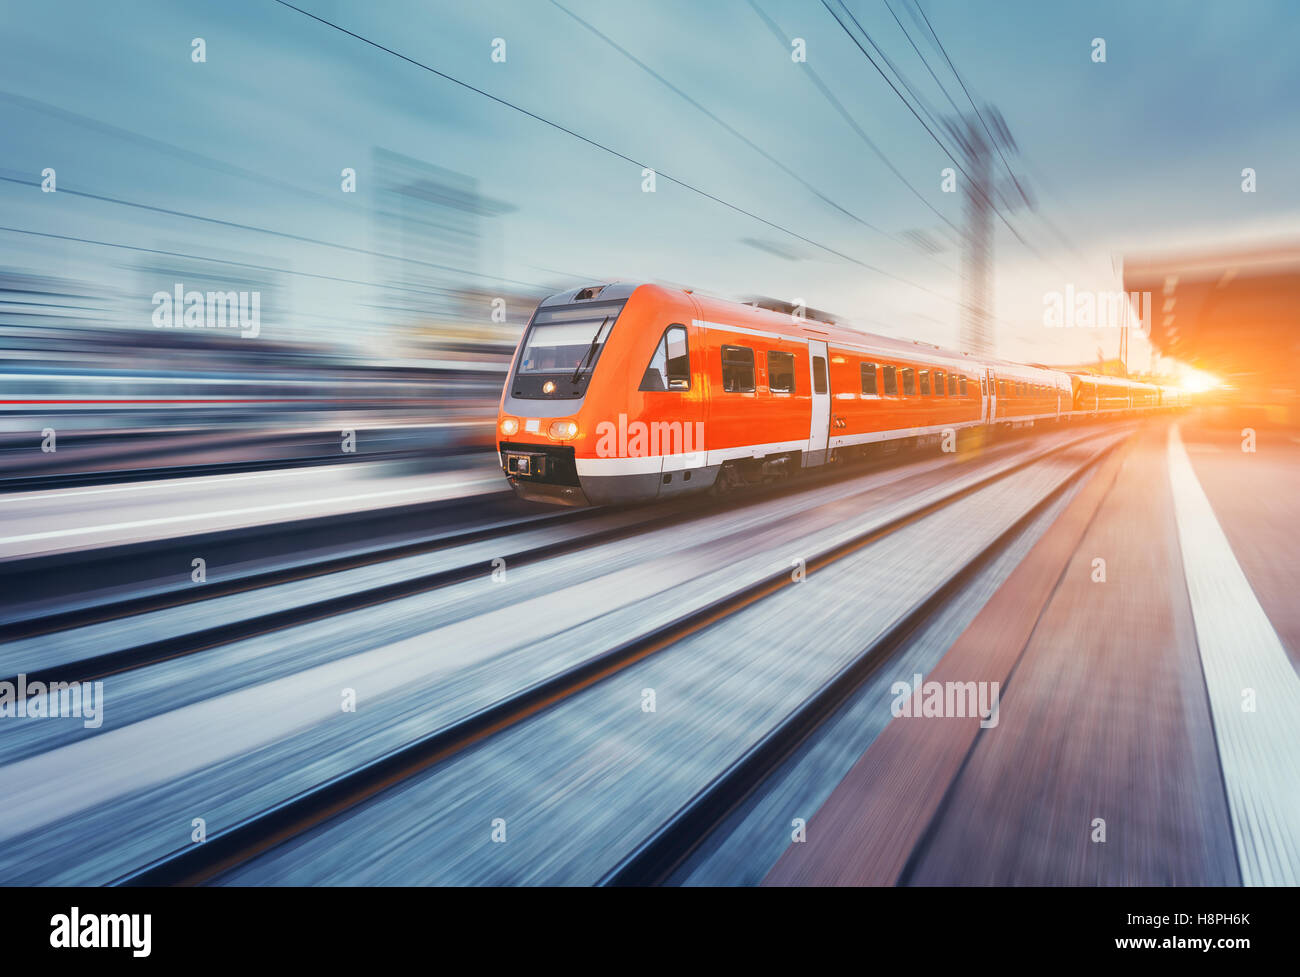 Modern high speed red passenger commuter train in motion at the railway platform at sunset. Railway station. Railroad - Stock Image